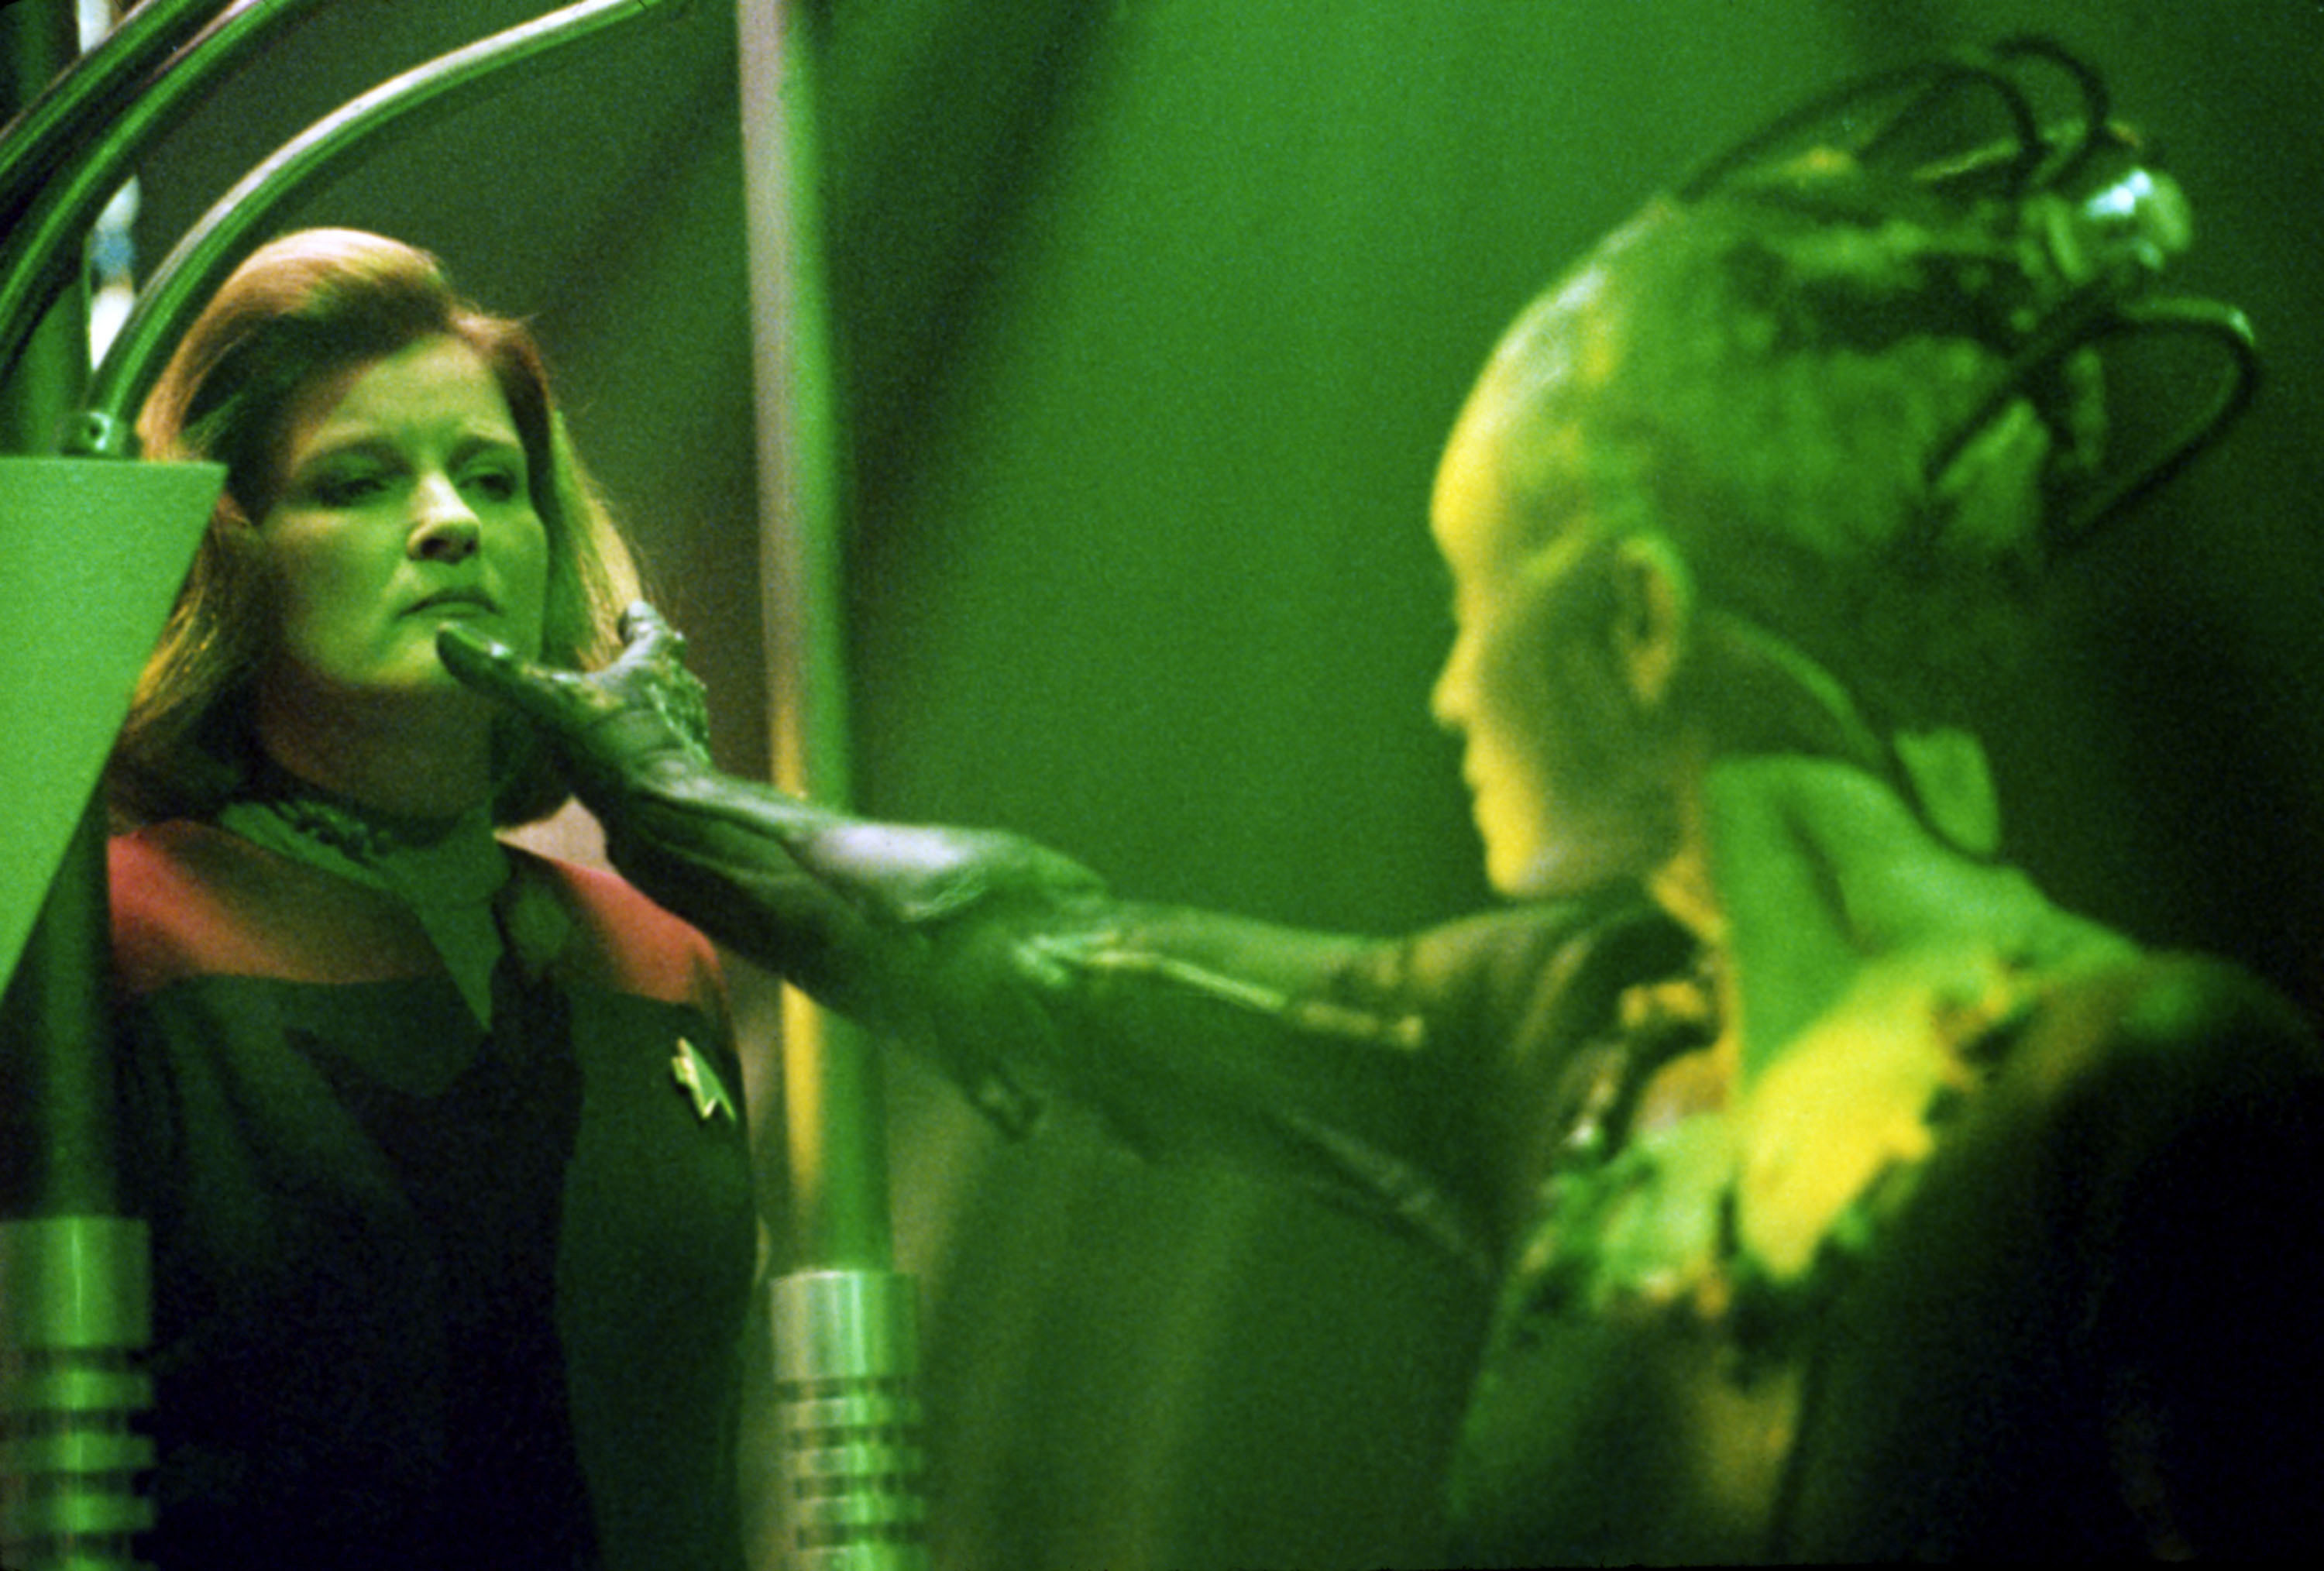 Actress Kate Mulgrew (Left) Stars As (Captain Kathryn Janeway) And Susanna Thompson Stars As (The Borg Queen) In United Paramount Network's Sci-Fi Television Series  Star Trek: Voyager.